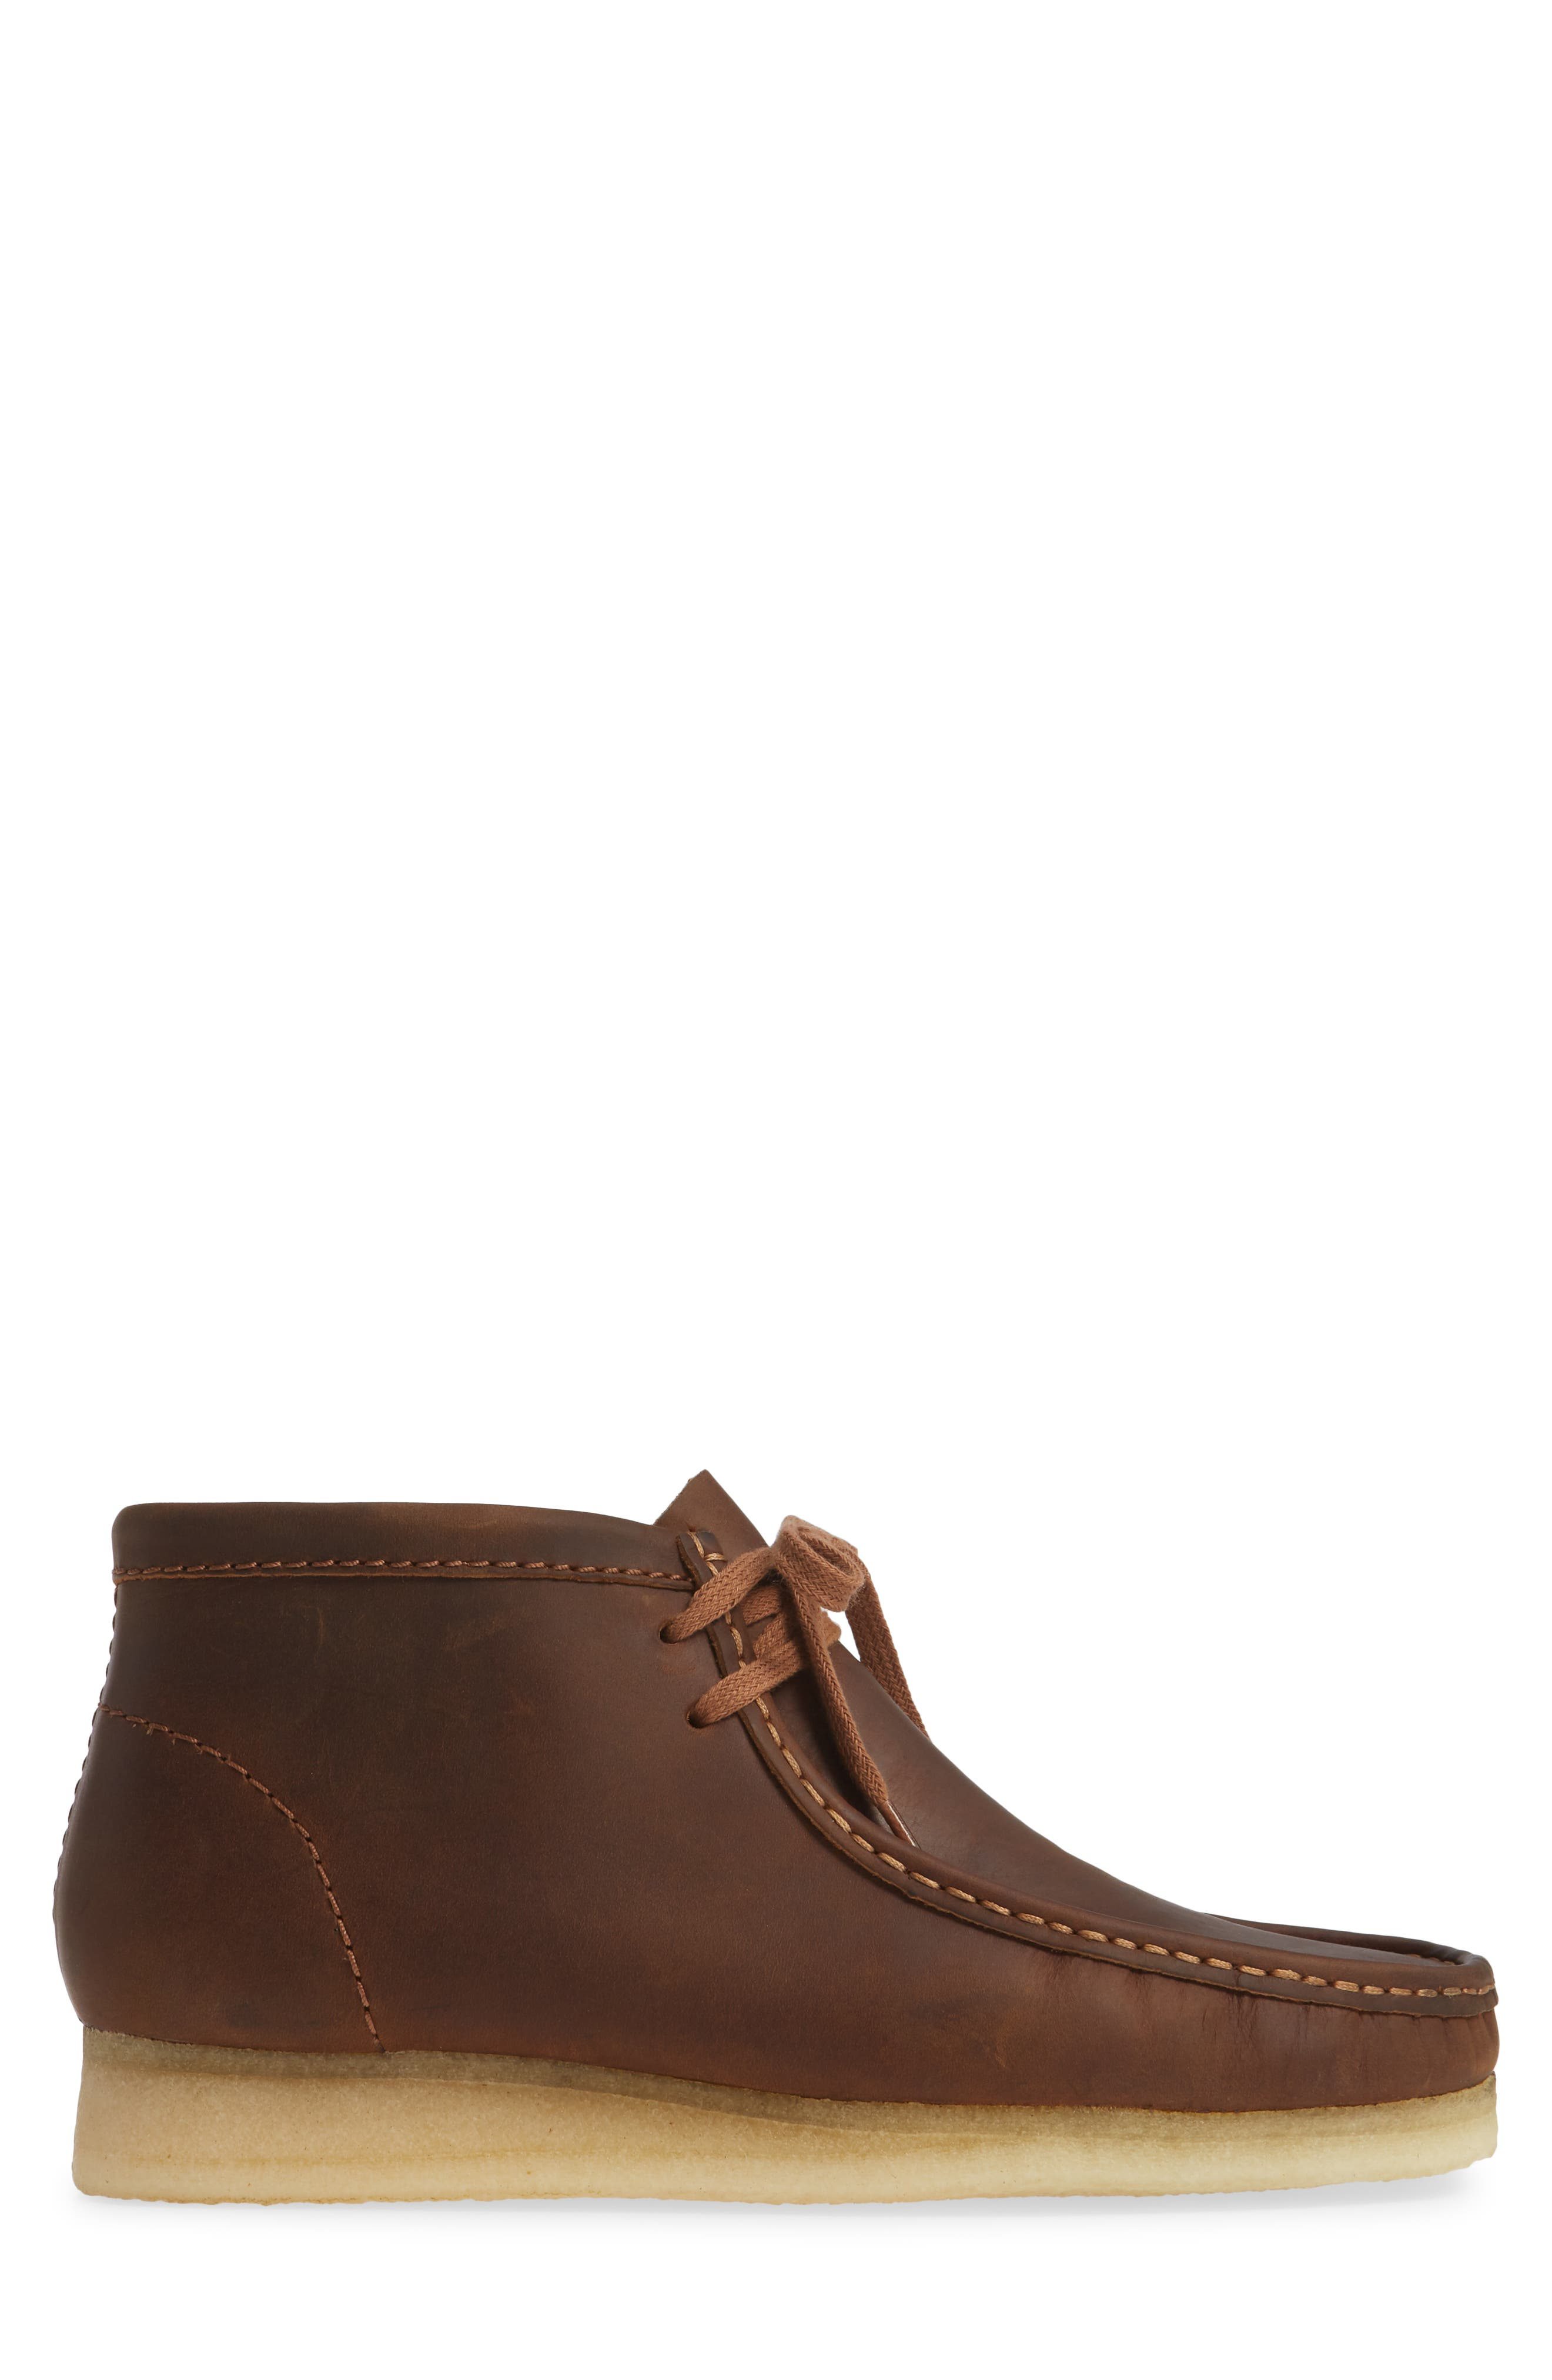 Wallabee Boot,                             Alternate thumbnail 3, color,                             BROWN LEATHER